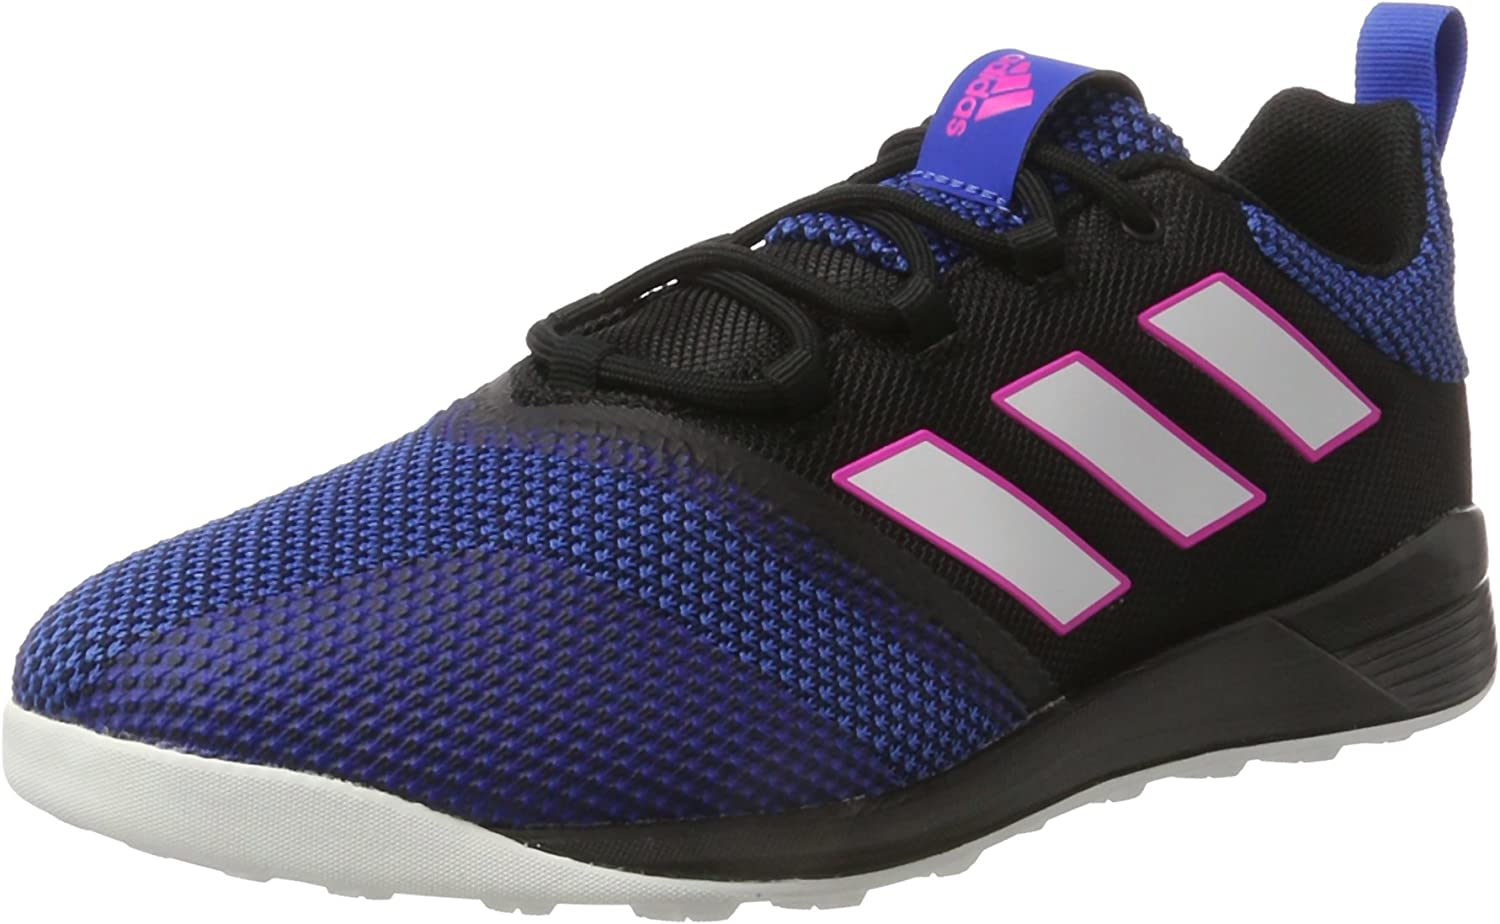 Ace Tango 17.2 Tr Bb4433 Trainers